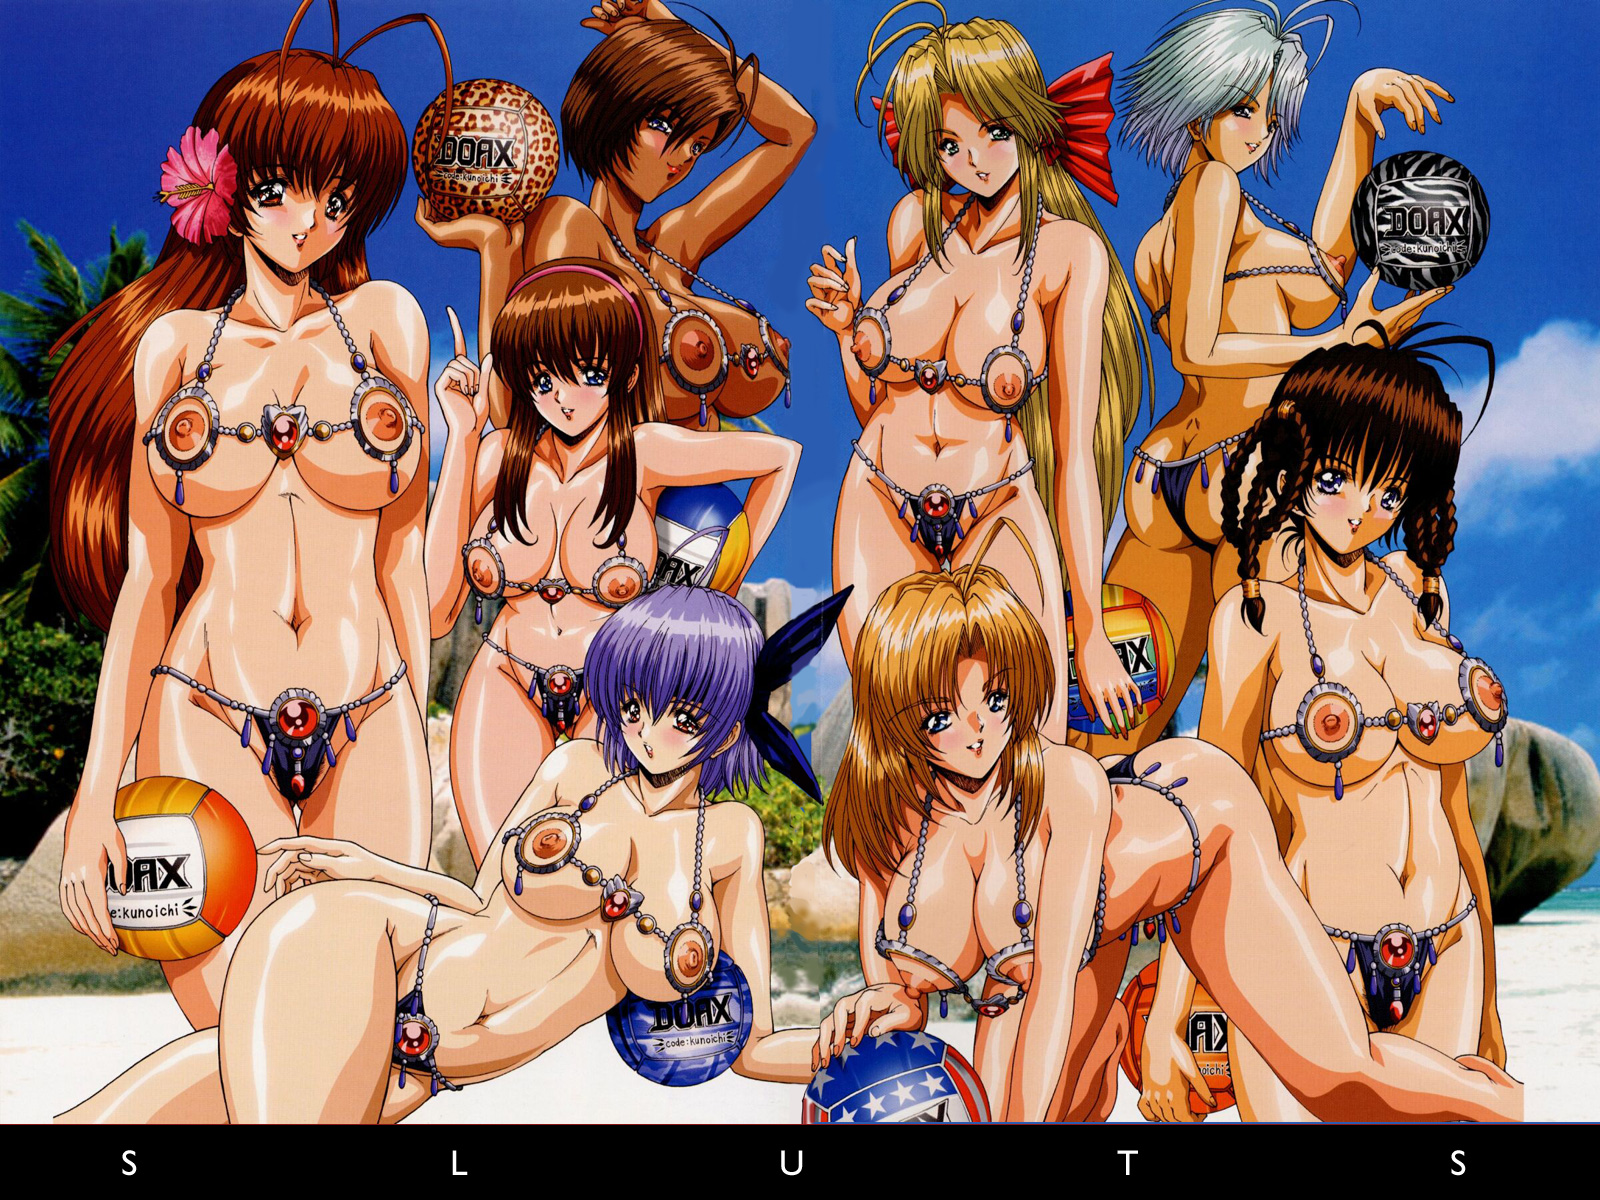 Dead or alive nude wallpapers xxx movies